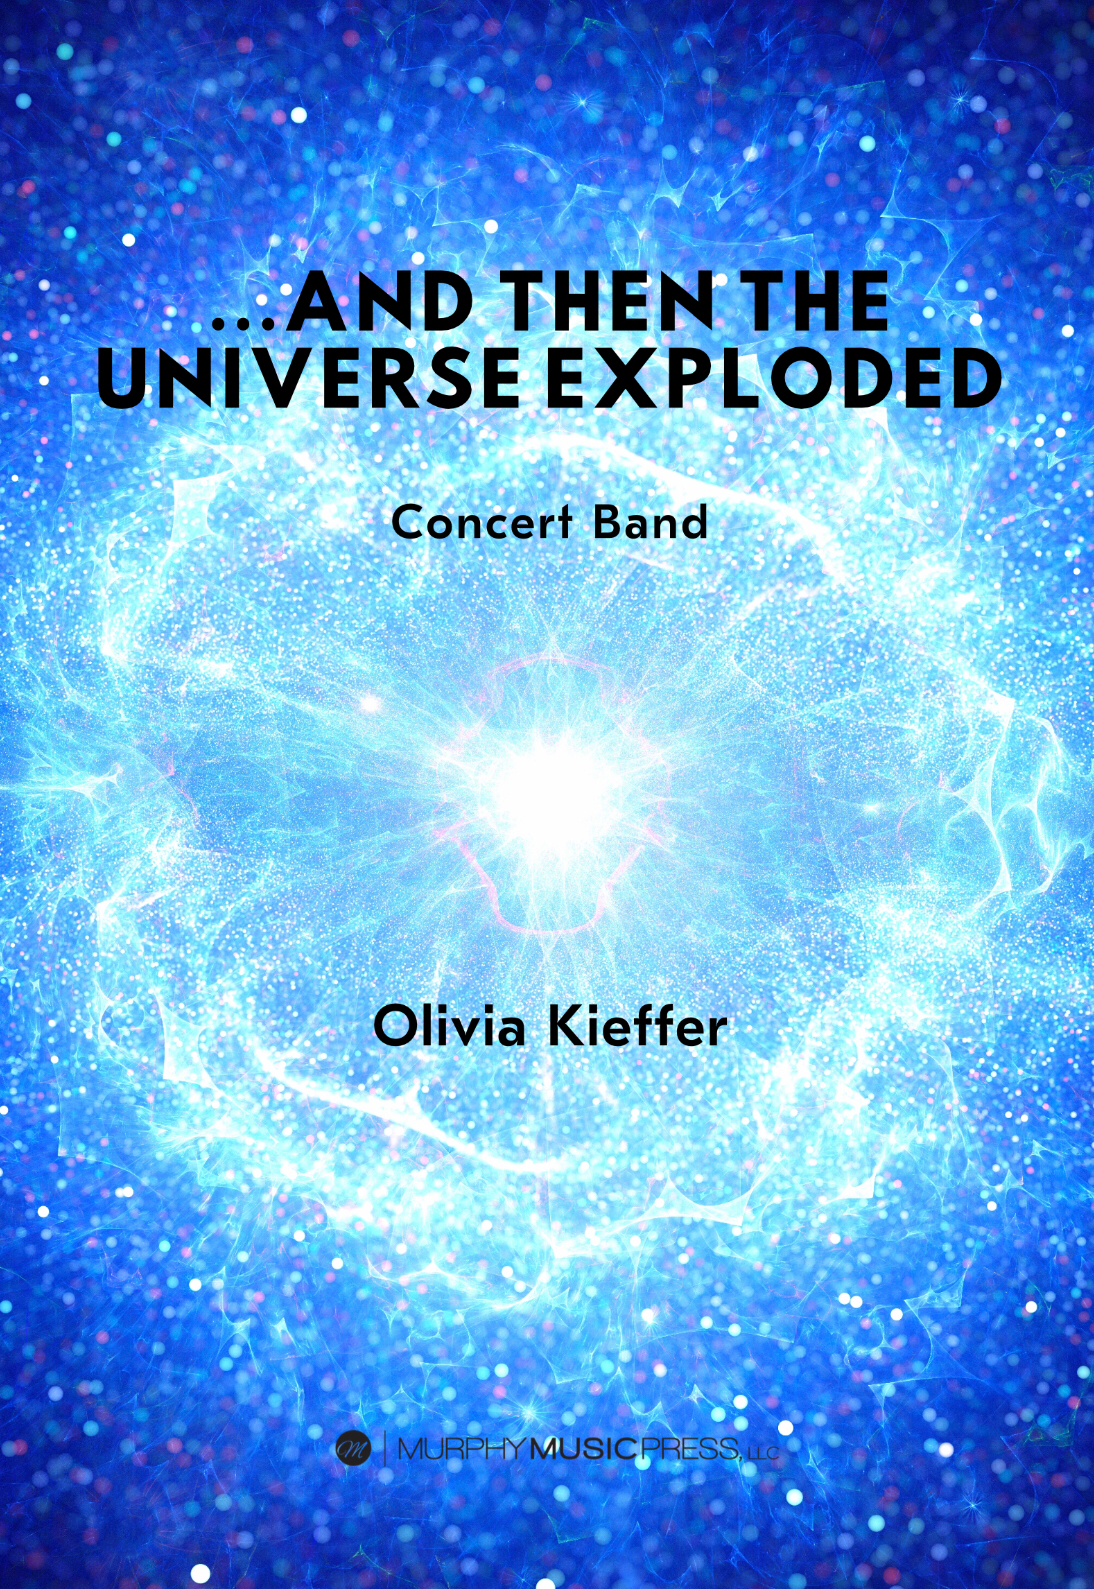 ...and Then The Universe Exploded by Olivia Kieffer